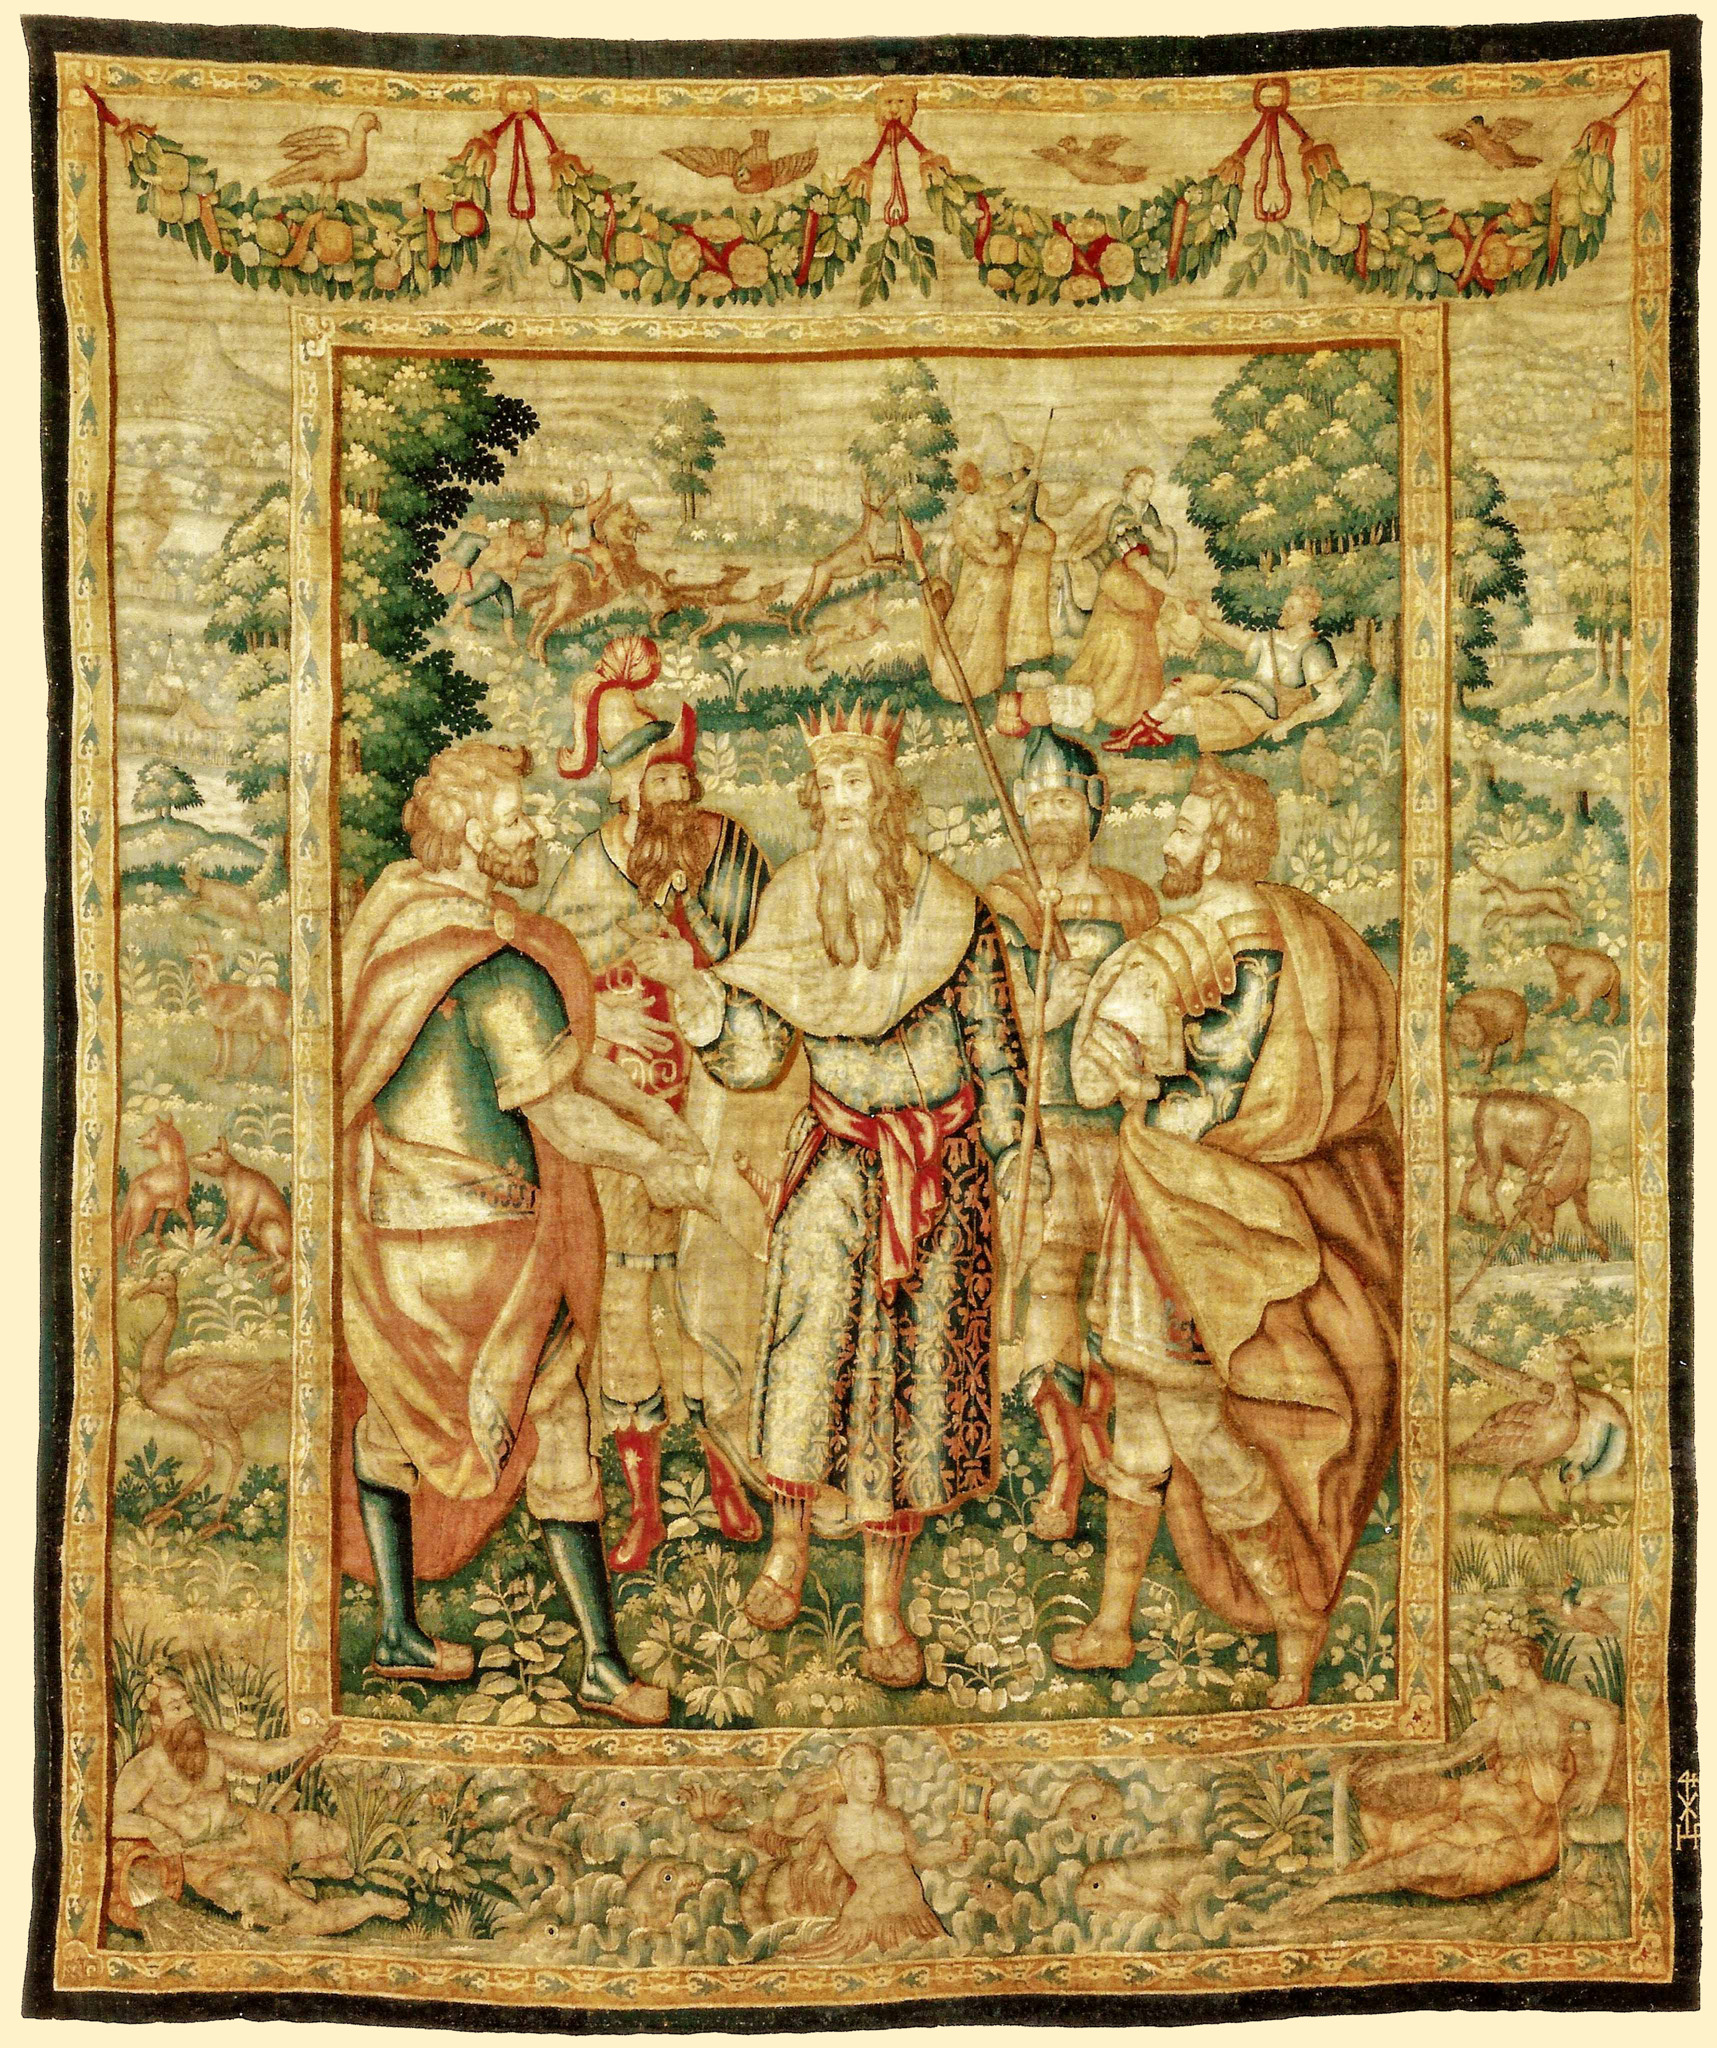 """Episodi della guerra di troia""""Episodes of Trojan War"" - Bruxelles, 1620 circa Arazziere Franz Van Den HeckeArazzo trama di lana e setaAlt. cm 304cm x 260cm largh.____________________Bruxelles abaut 1620Workshop Franz Van Den Hecke Wool and Silk tapestry, high 10 ft, wide 8 ft 8in>>>Click the image to enlarge"